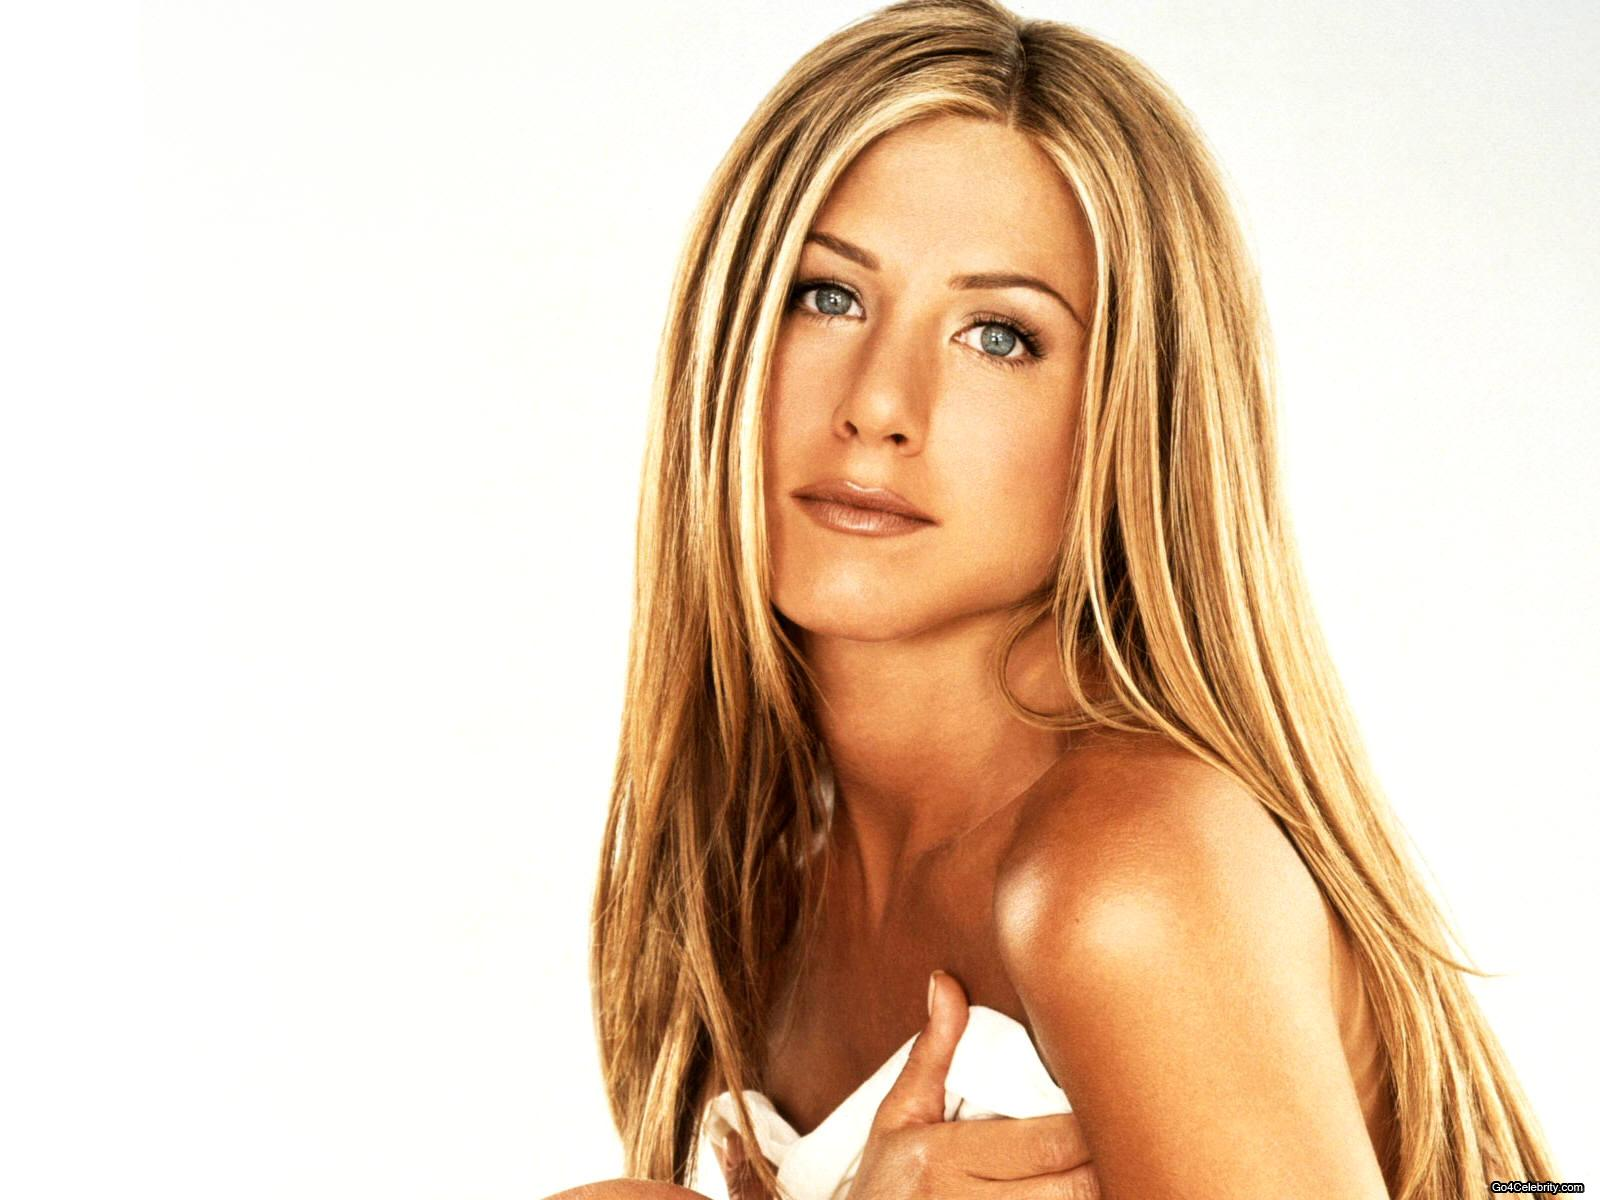 Jennifer Aniston - Jennifer Aniston Wallpaper (81366) - Fanpop